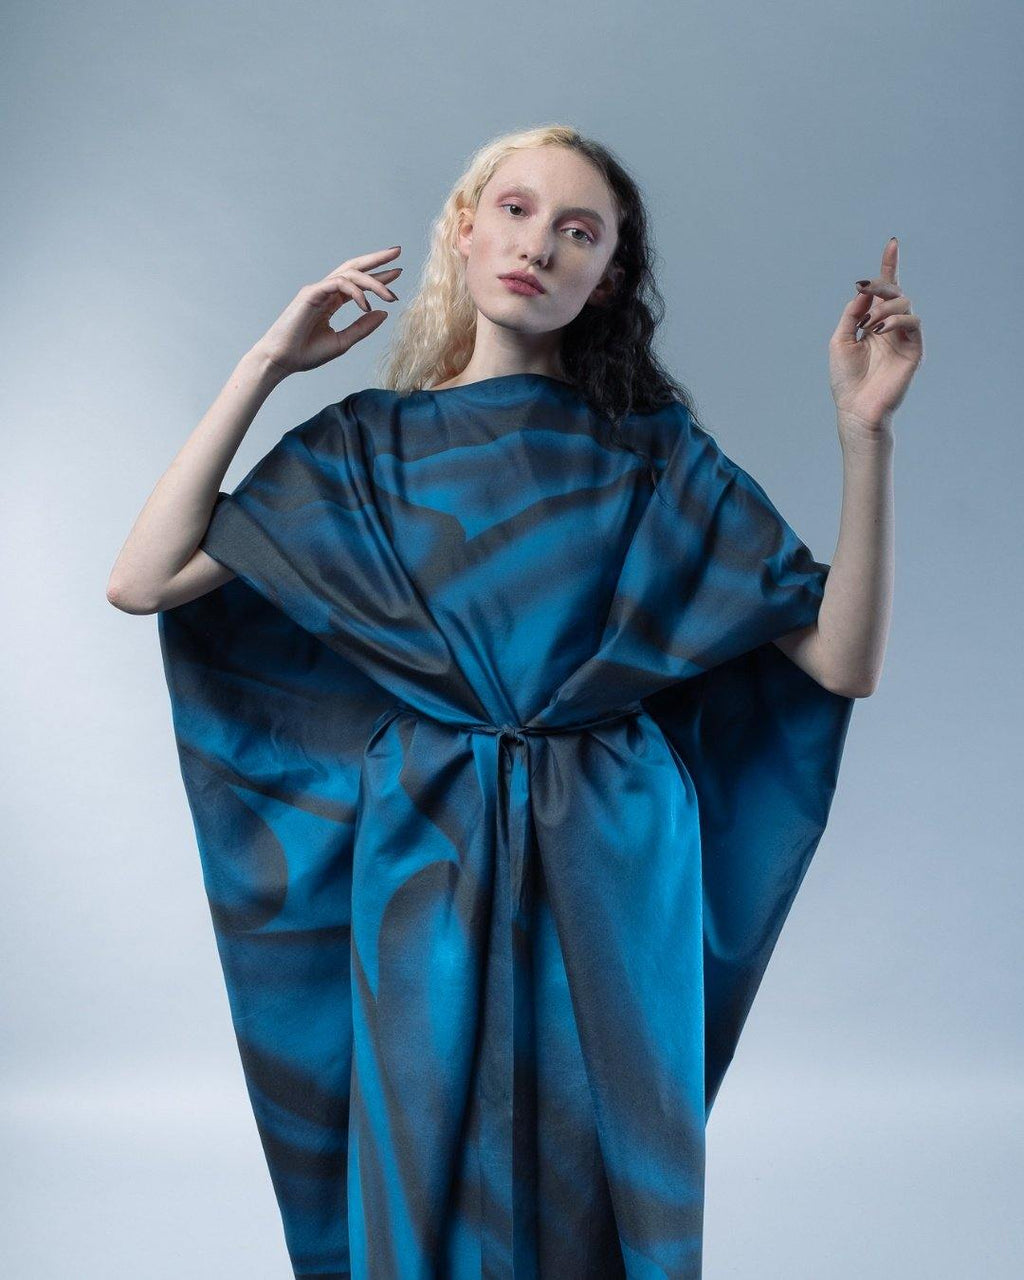 HYBRID SILK DRESS - HANA FRISONSOVA